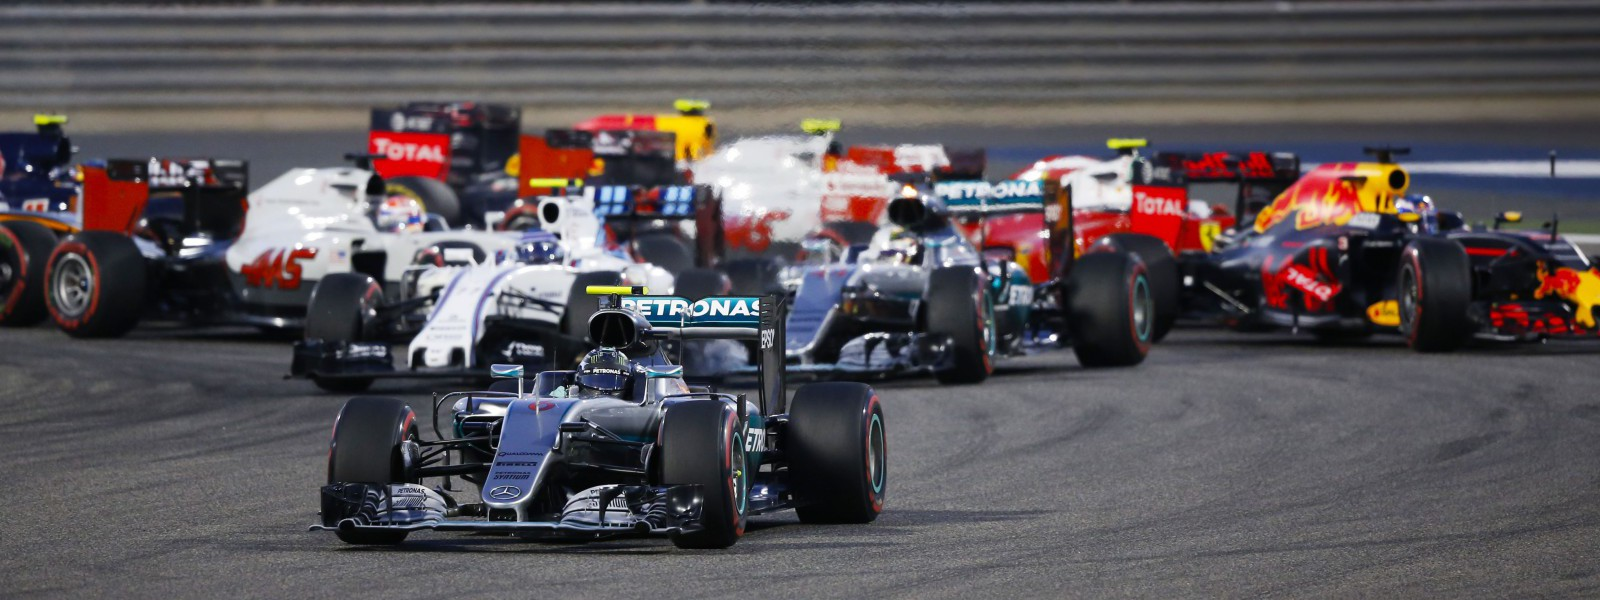 Motorsports: FIA Formula One World Championship 2016, Grand Prix of Bahrain,  #6 Nico Rosberg (GER, Mercedes AMG Petronas Formula One Team), #77 Valtteri Bottas (FIN, Williams Martini Racing), #44 Lewis Hamilton (GBR, Mercedes AMG Petronas Formula One Team),   start, mass, Masse, Menge, viele, many *** Local Caption *** +++ www.hoch-zwei.net +++ copyright: HOCH ZWEI +++